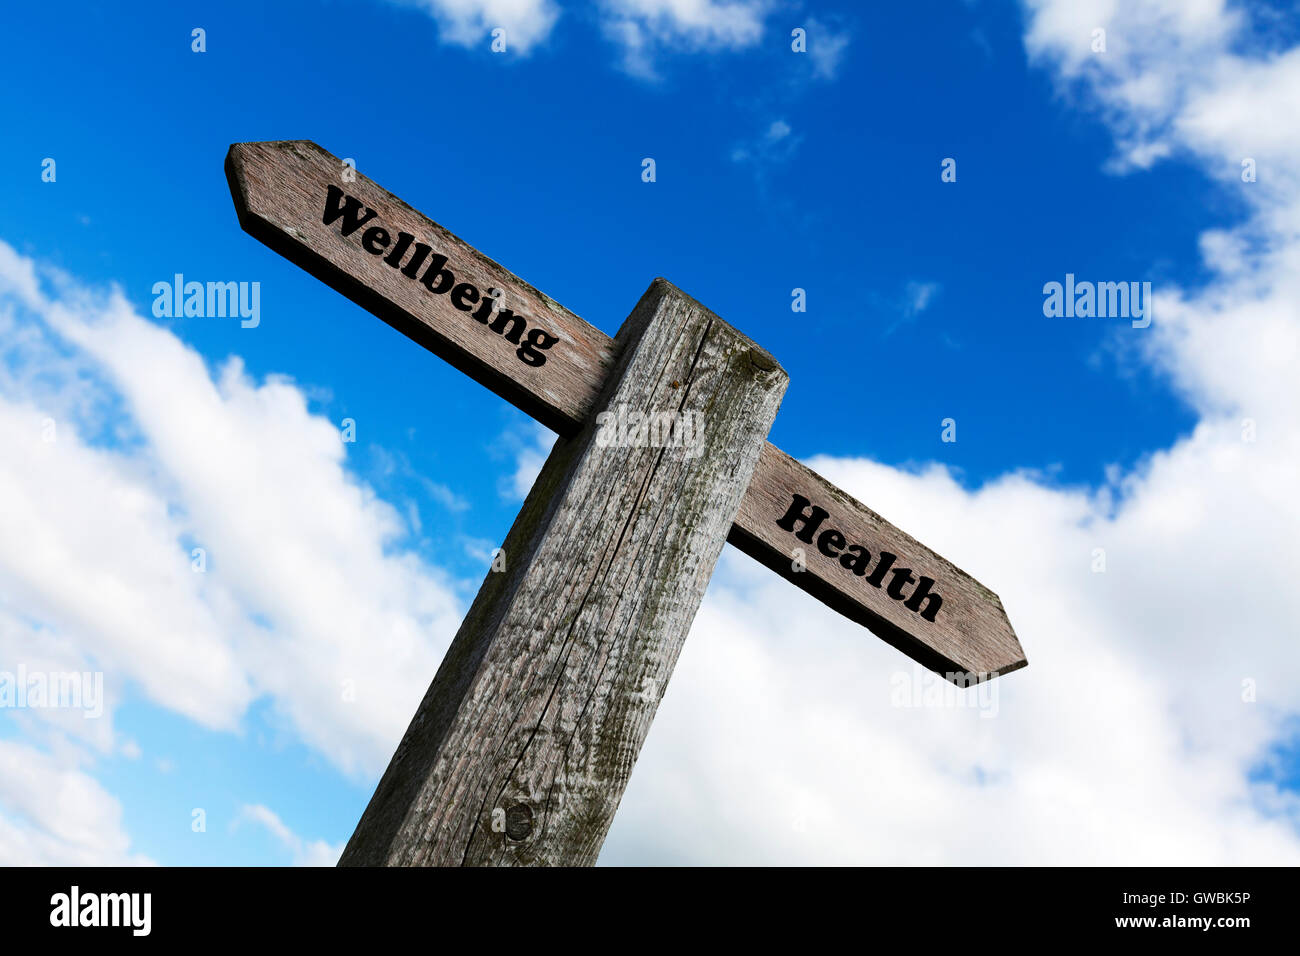 Wellbeing health mental health mentally healthy sign words direction directions choice option options choose way - Stock Image